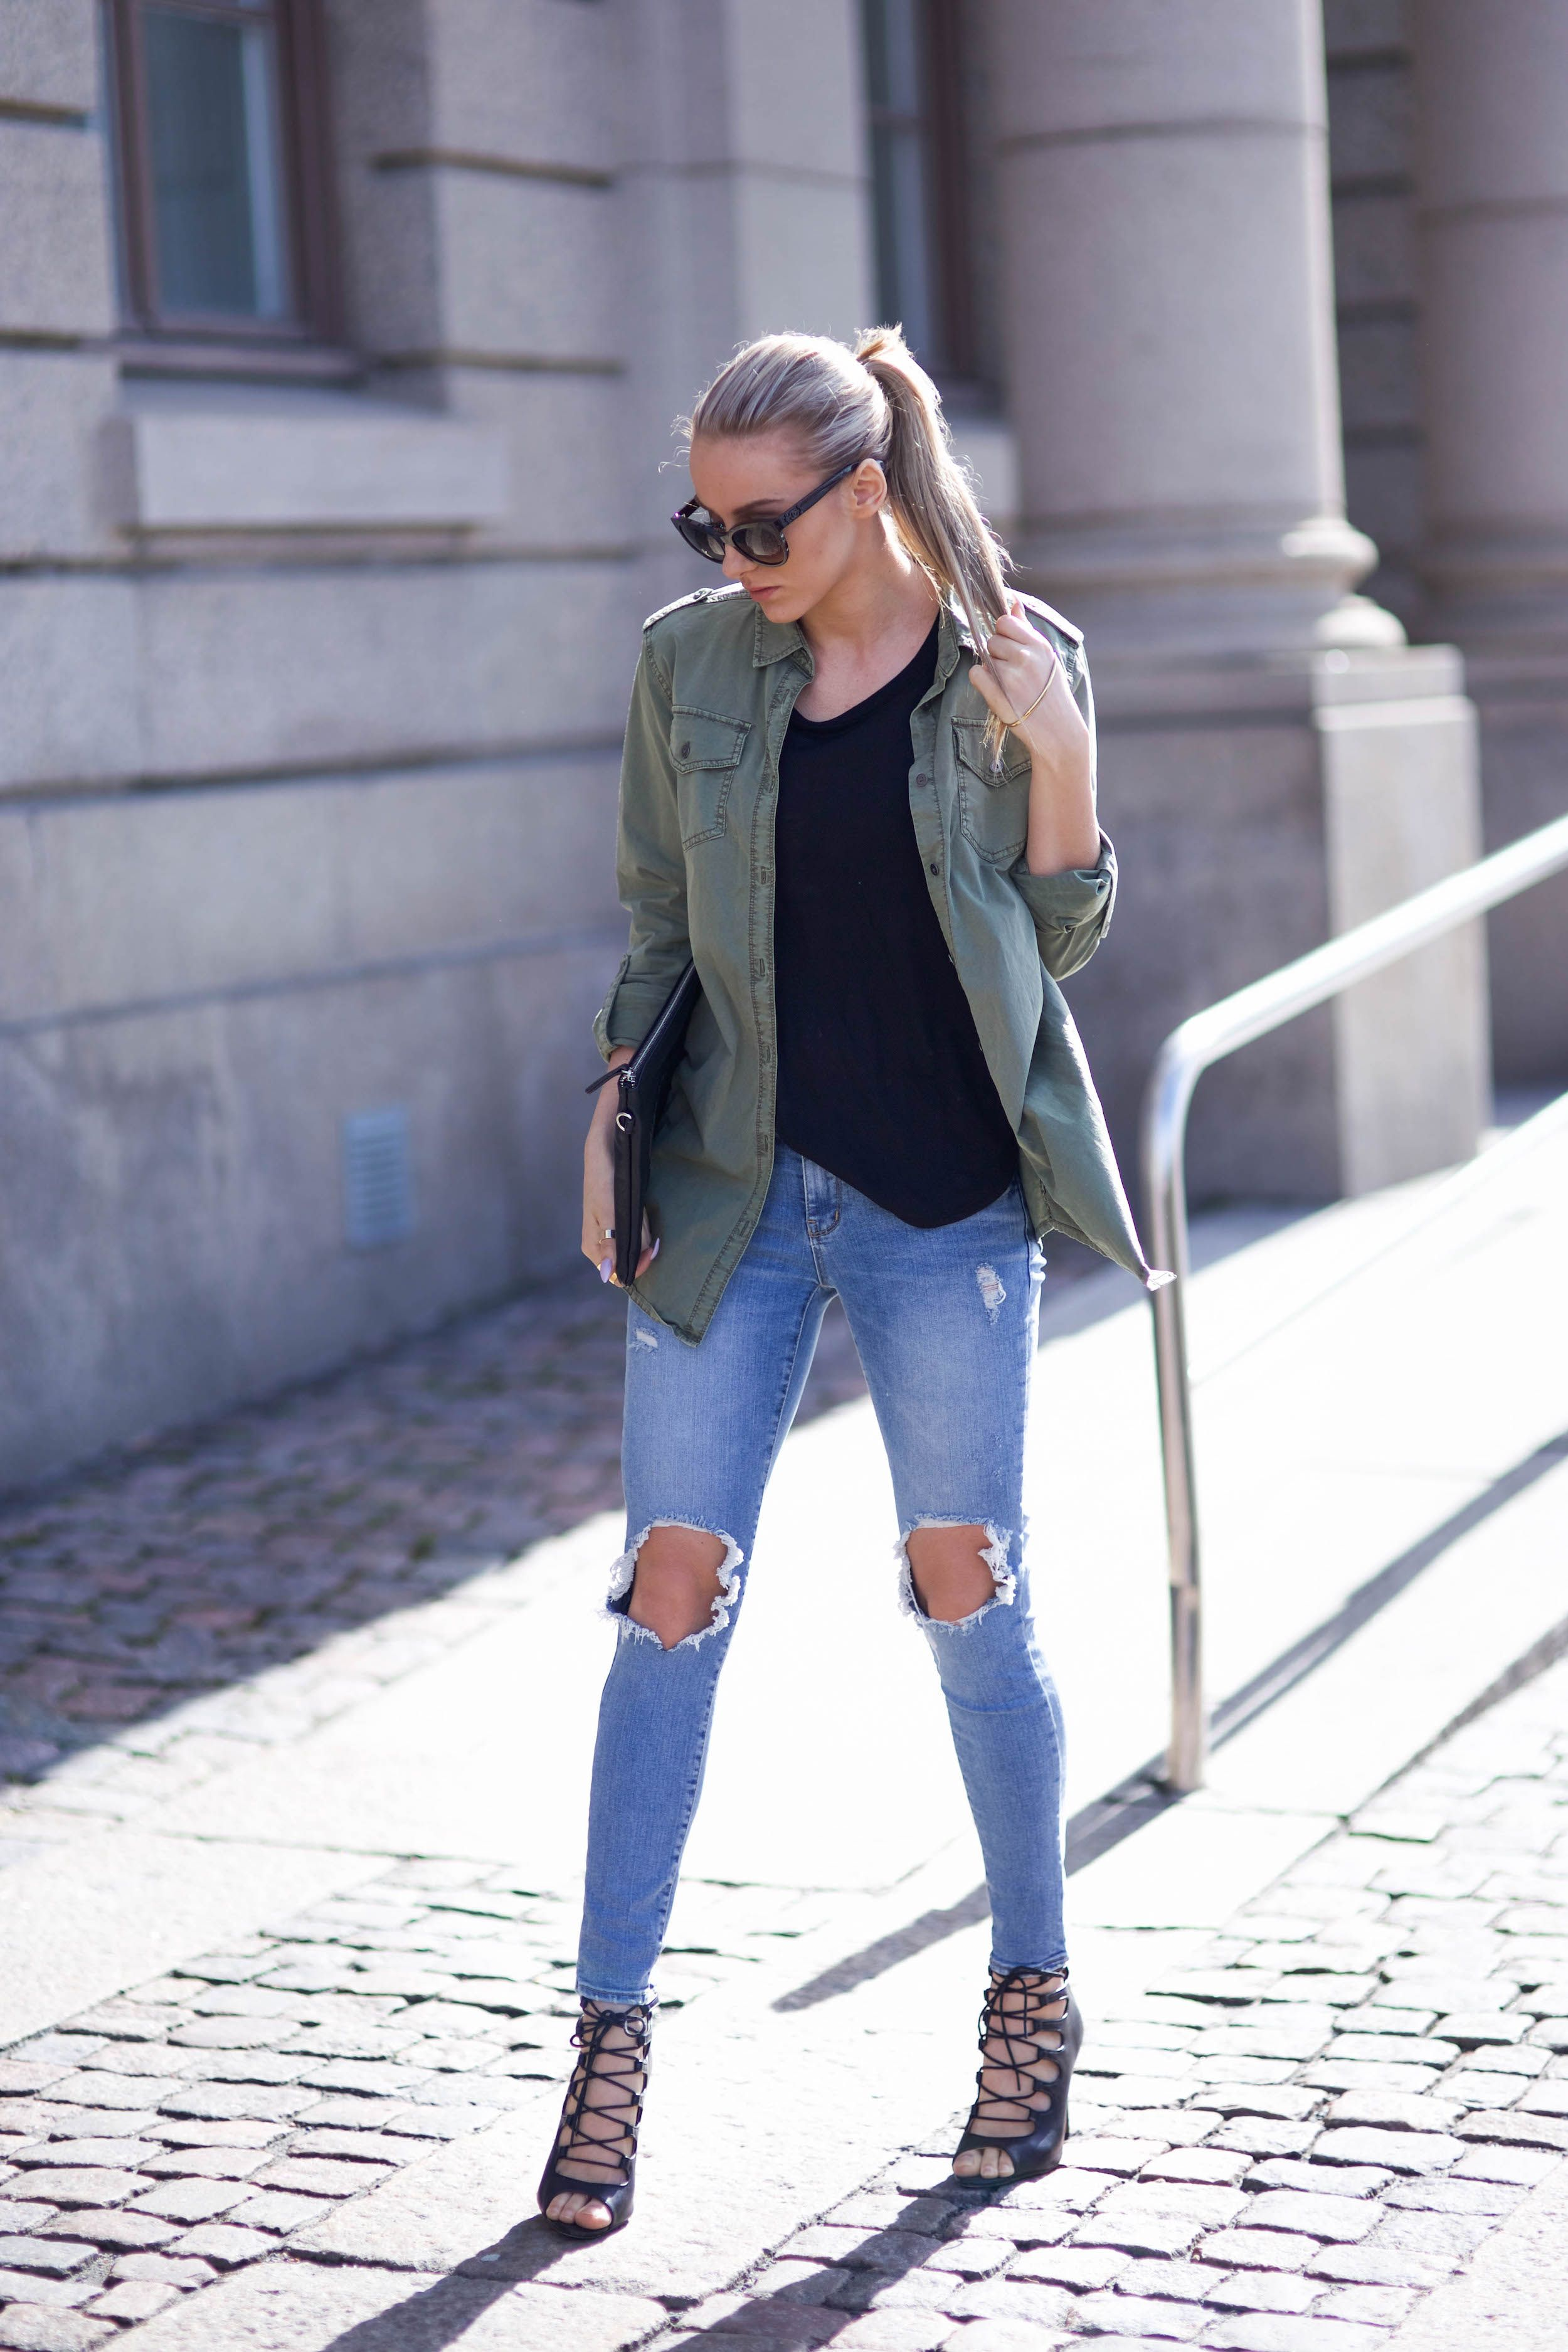 ff5a5f5b30 How To Style The Military Trend  Jennifer Sandsjö is wearing a khaki green  Ginatricot shirt with distressed Chicy jeans